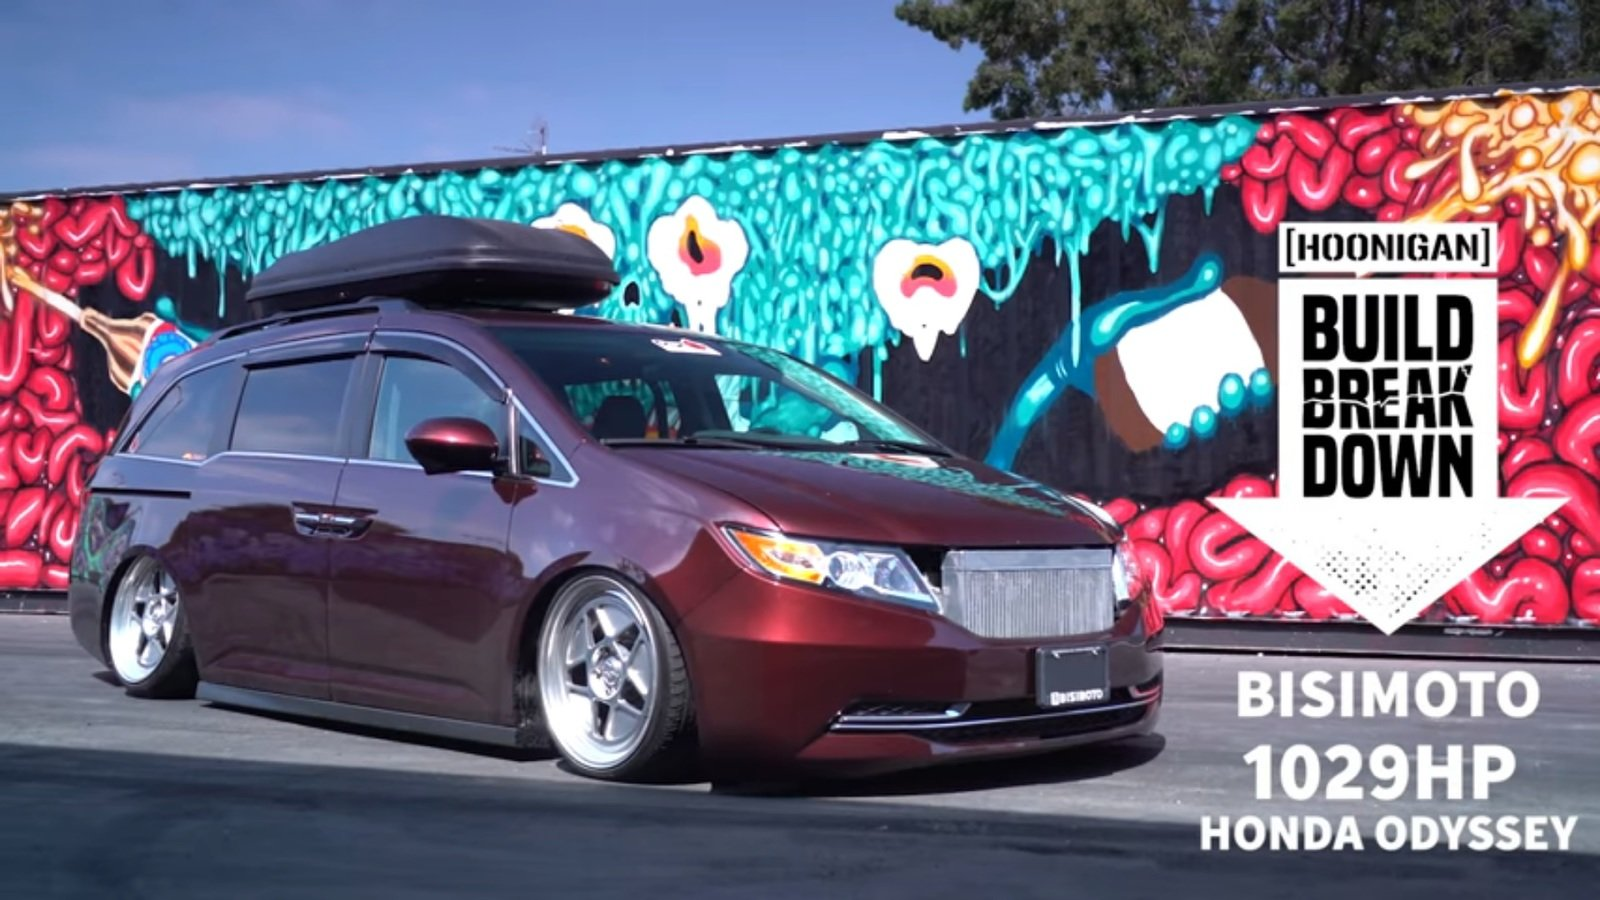 The Hoonigan Crew And Bisimoto Prove The Fix For Uncool Is More Horsepower: Video News - Top Speed